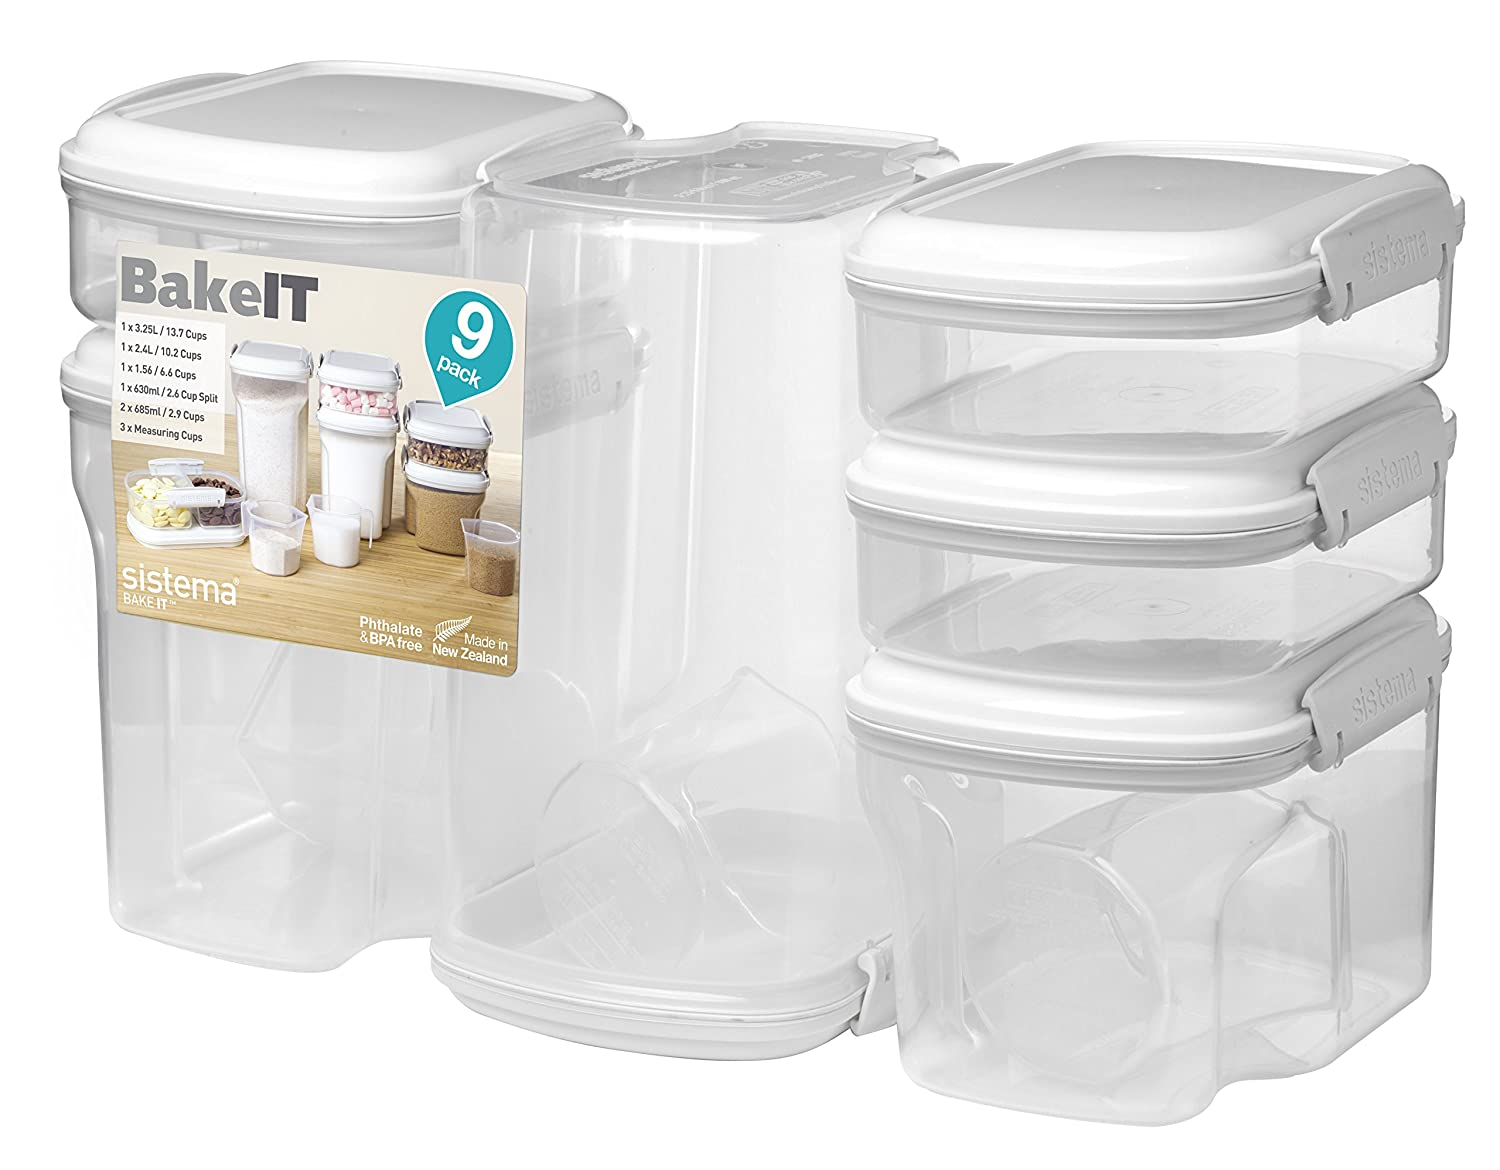 Amazon.com Sistema Bake IT Collection Food Storage Containers Clear/White 9-Piece Set Kitchen u0026 Dining  sc 1 st  Amazon.com & Amazon.com: Sistema Bake IT Collection Food Storage Containers ...